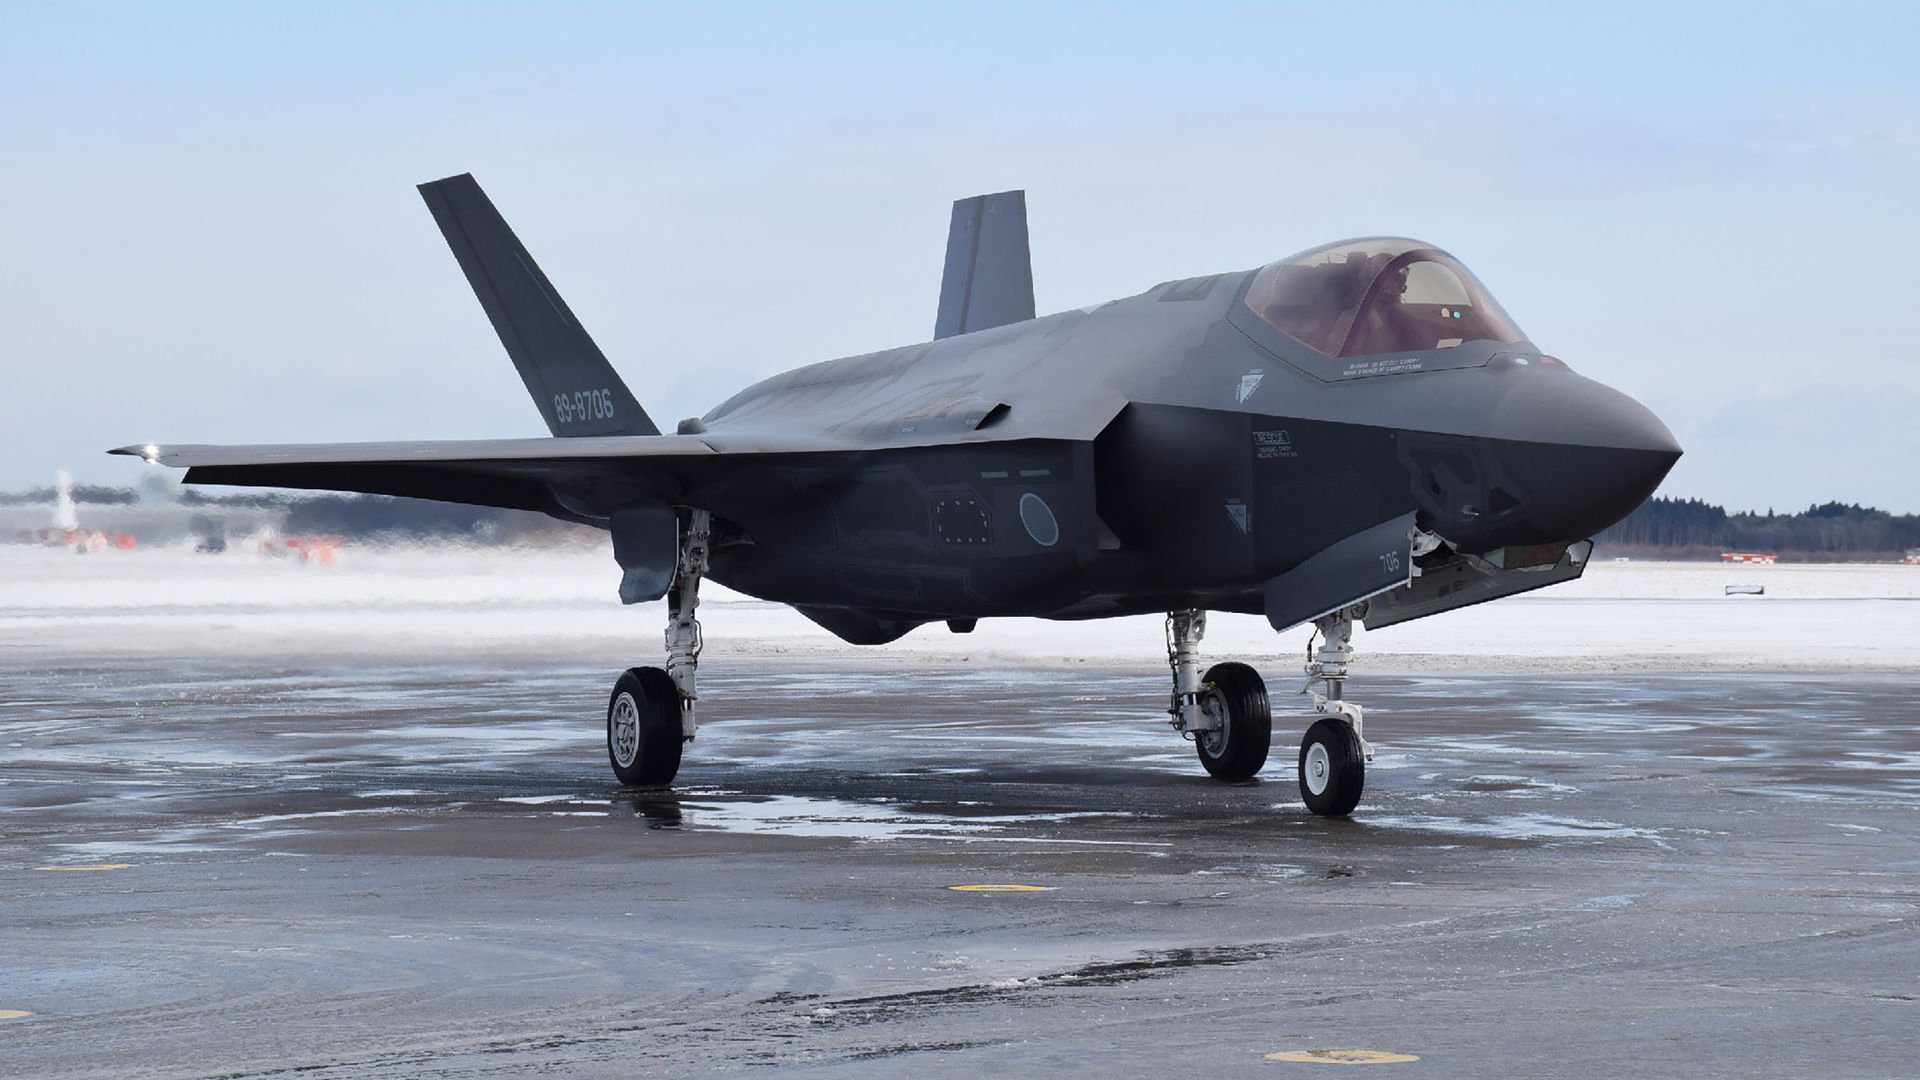 A F-35A stealth fighter jet of Japan's Self-Defence Forces, the same model as the one that crashed.